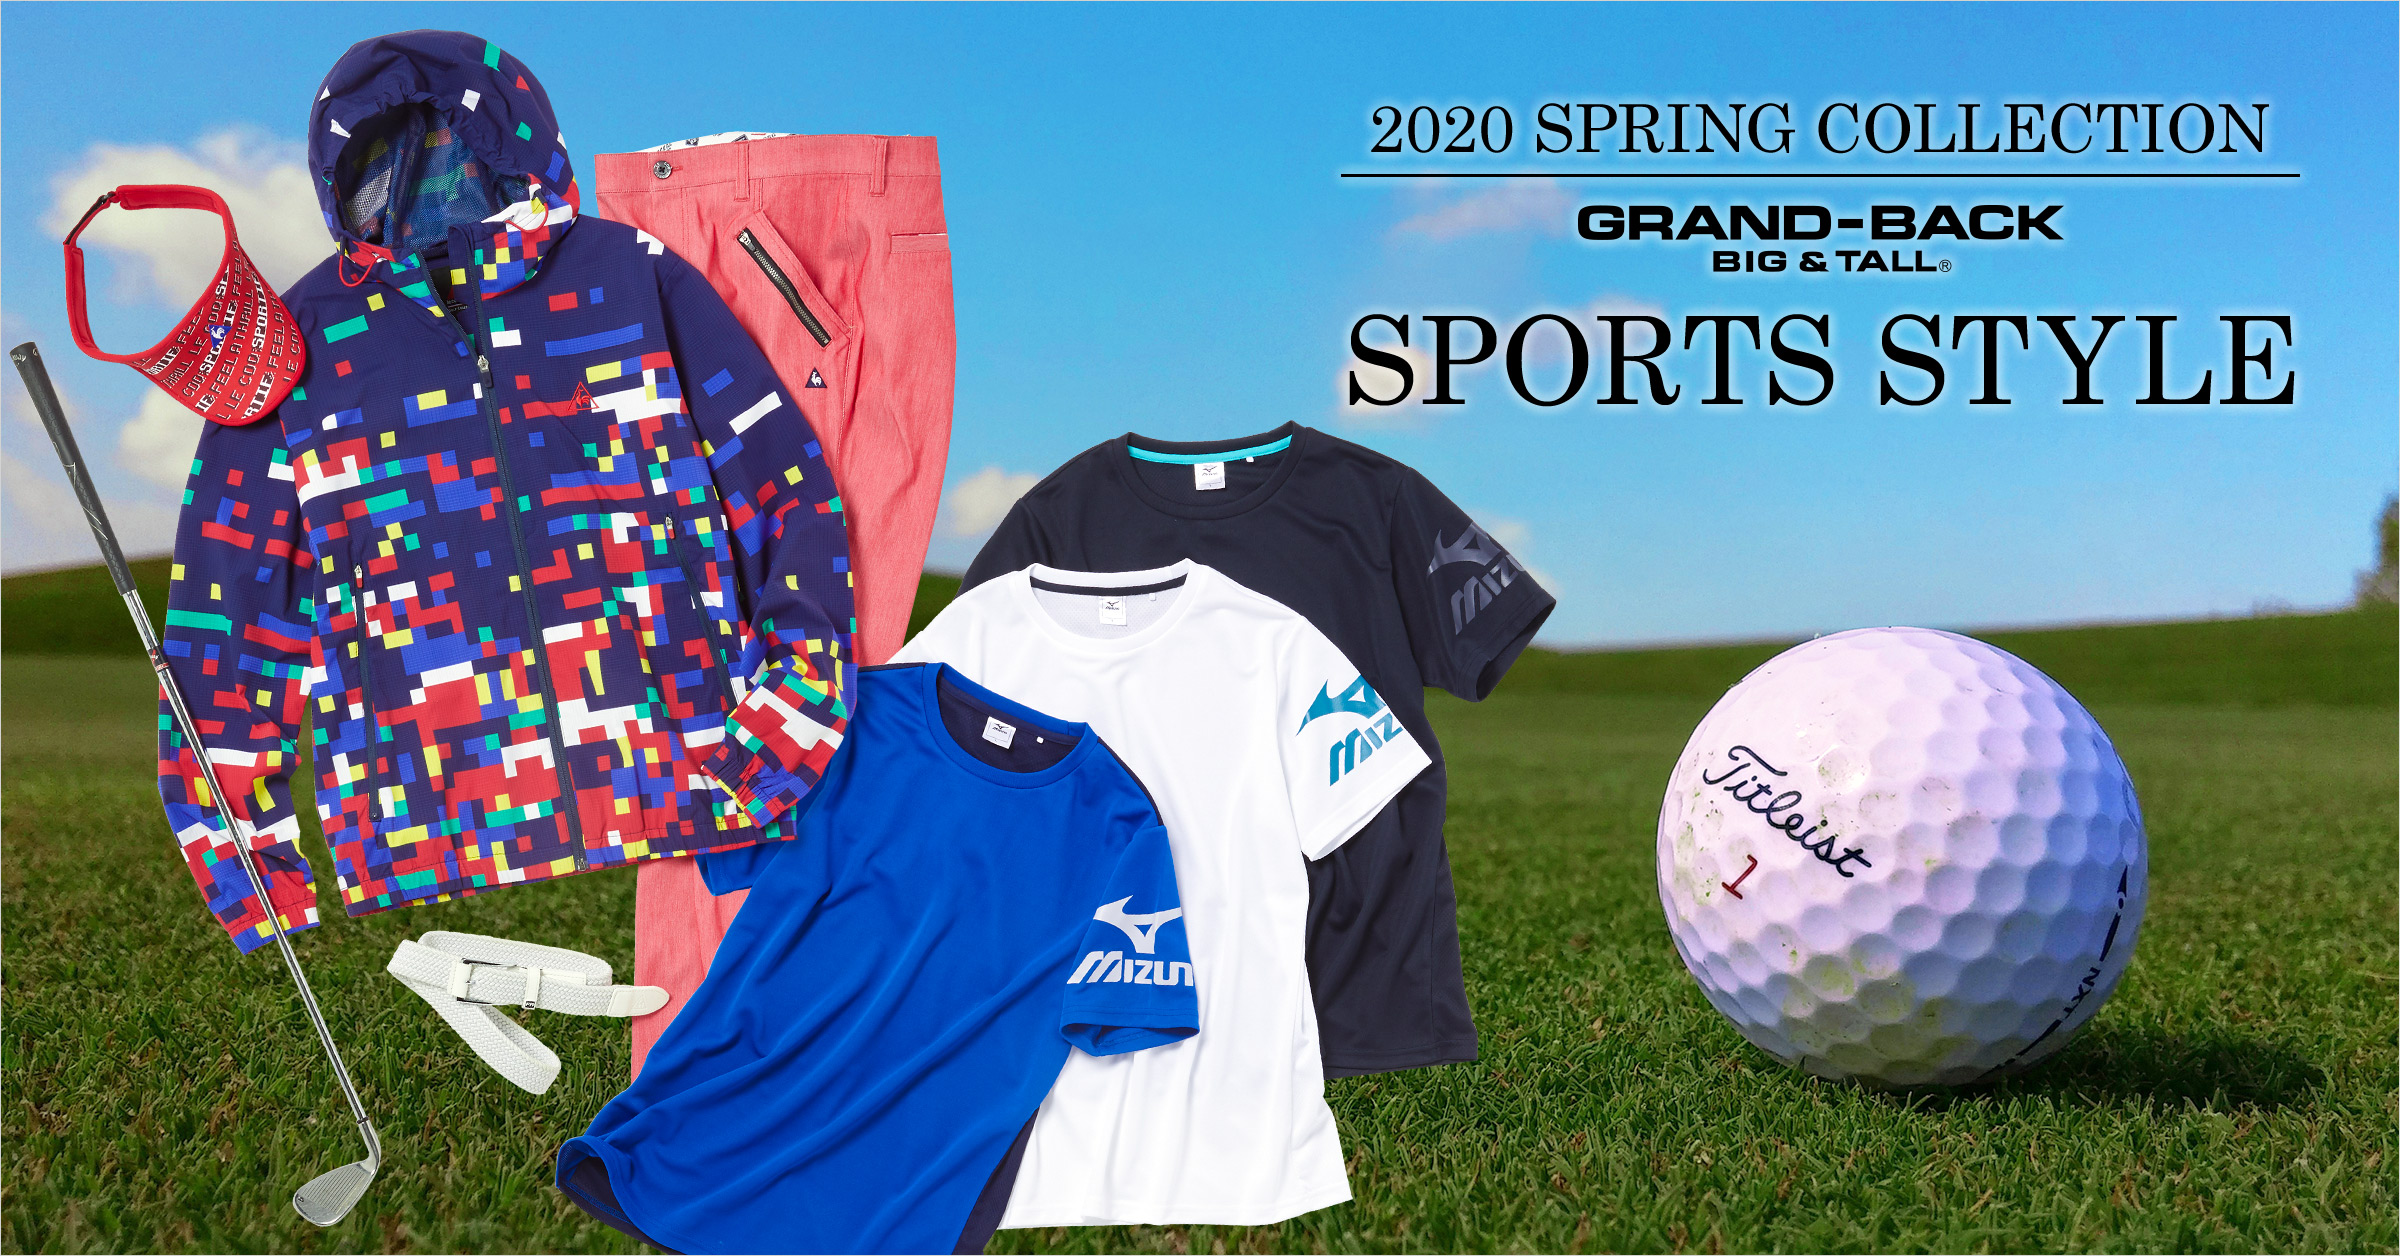 2020 Spring Sports style